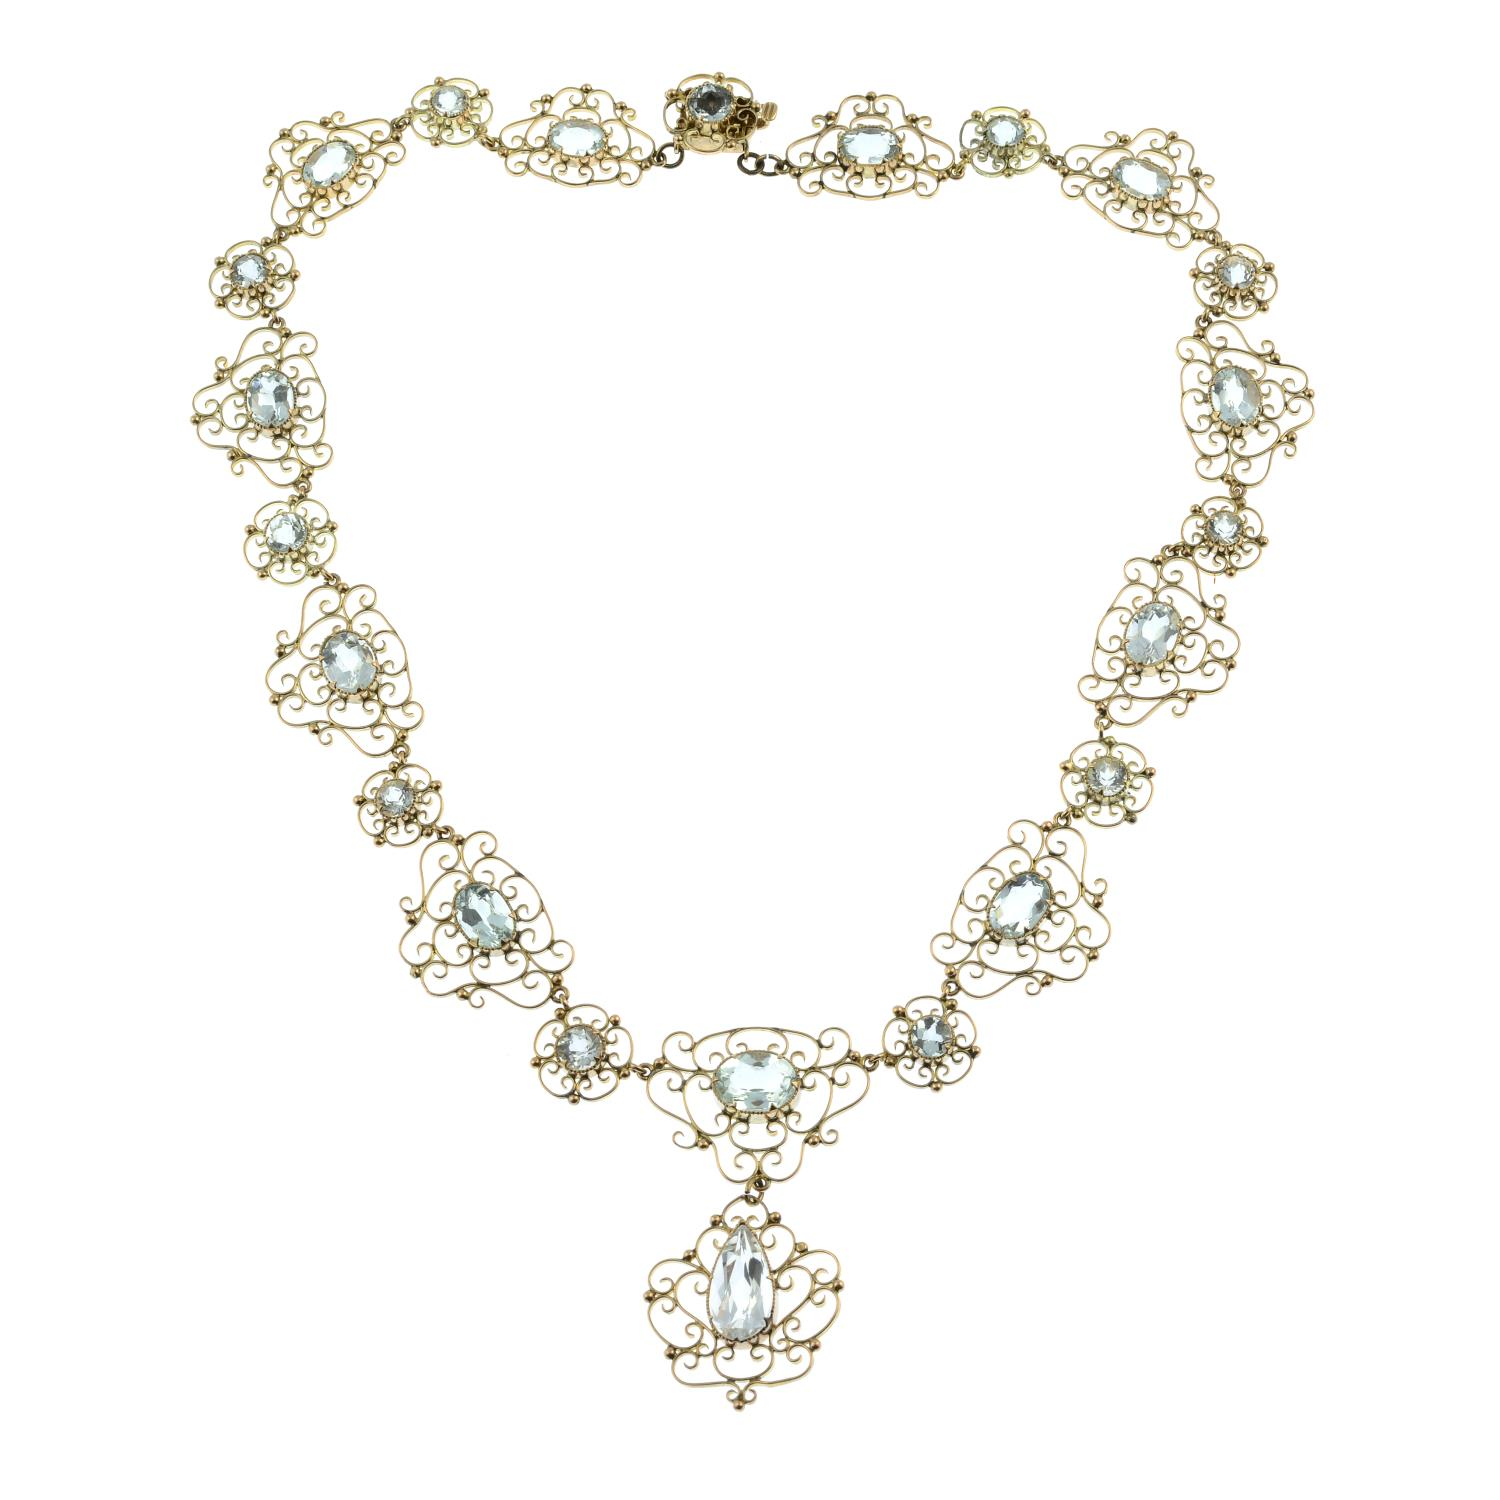 An early 20th century Arts & Crafts gold aquamarine necklace.Length 43.5cms. - Image 4 of 6